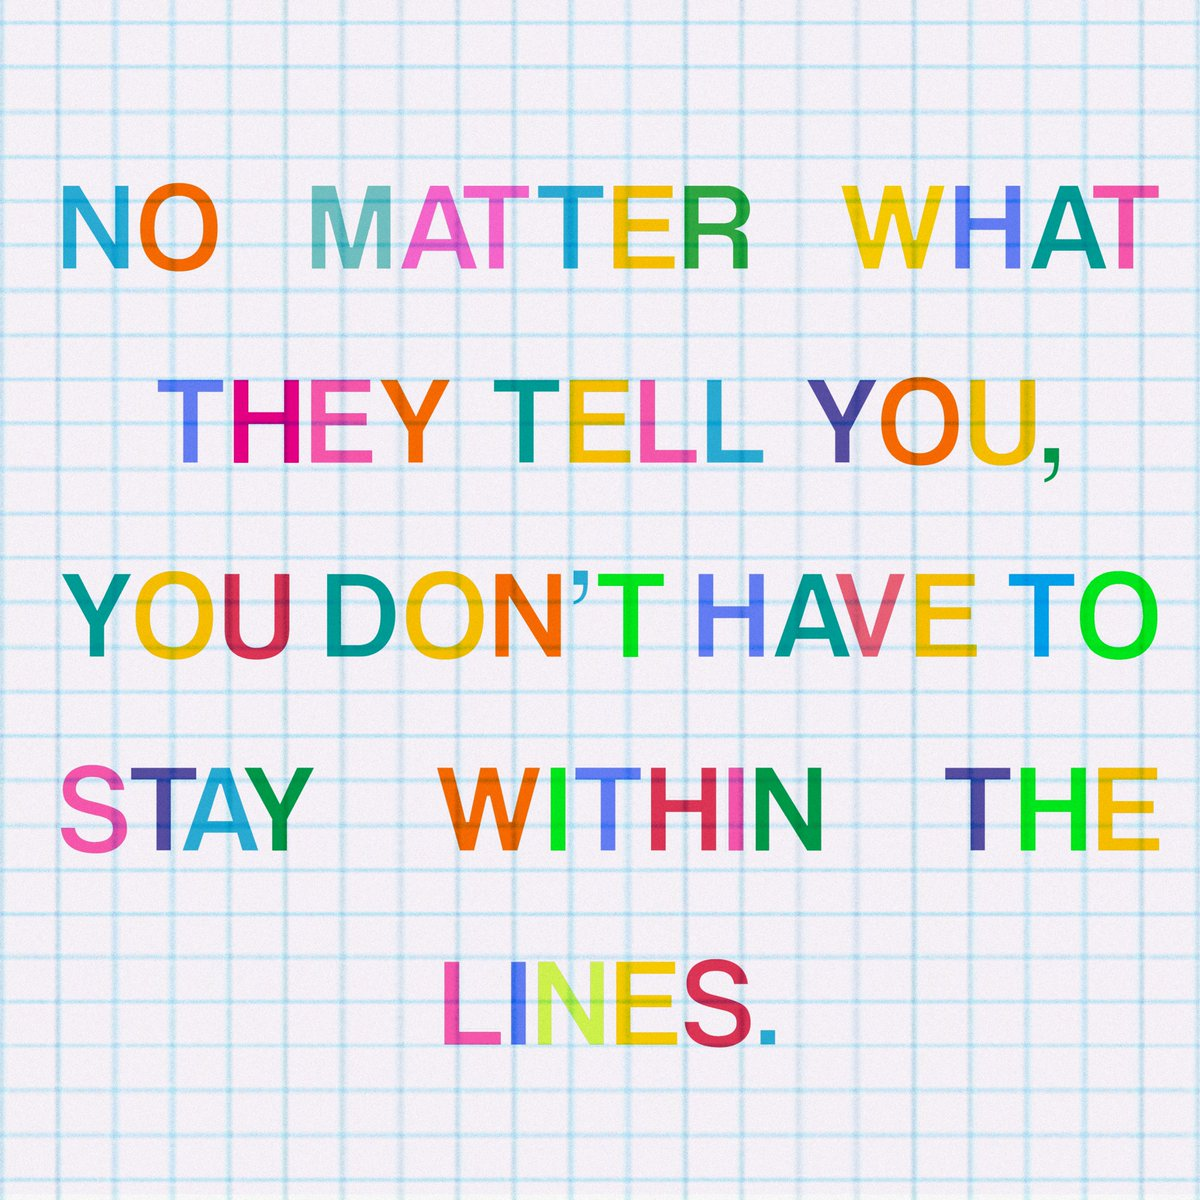 Life's more fun outside the lines 🌈 #MondayMotivation bit.ly/2YiCEMo